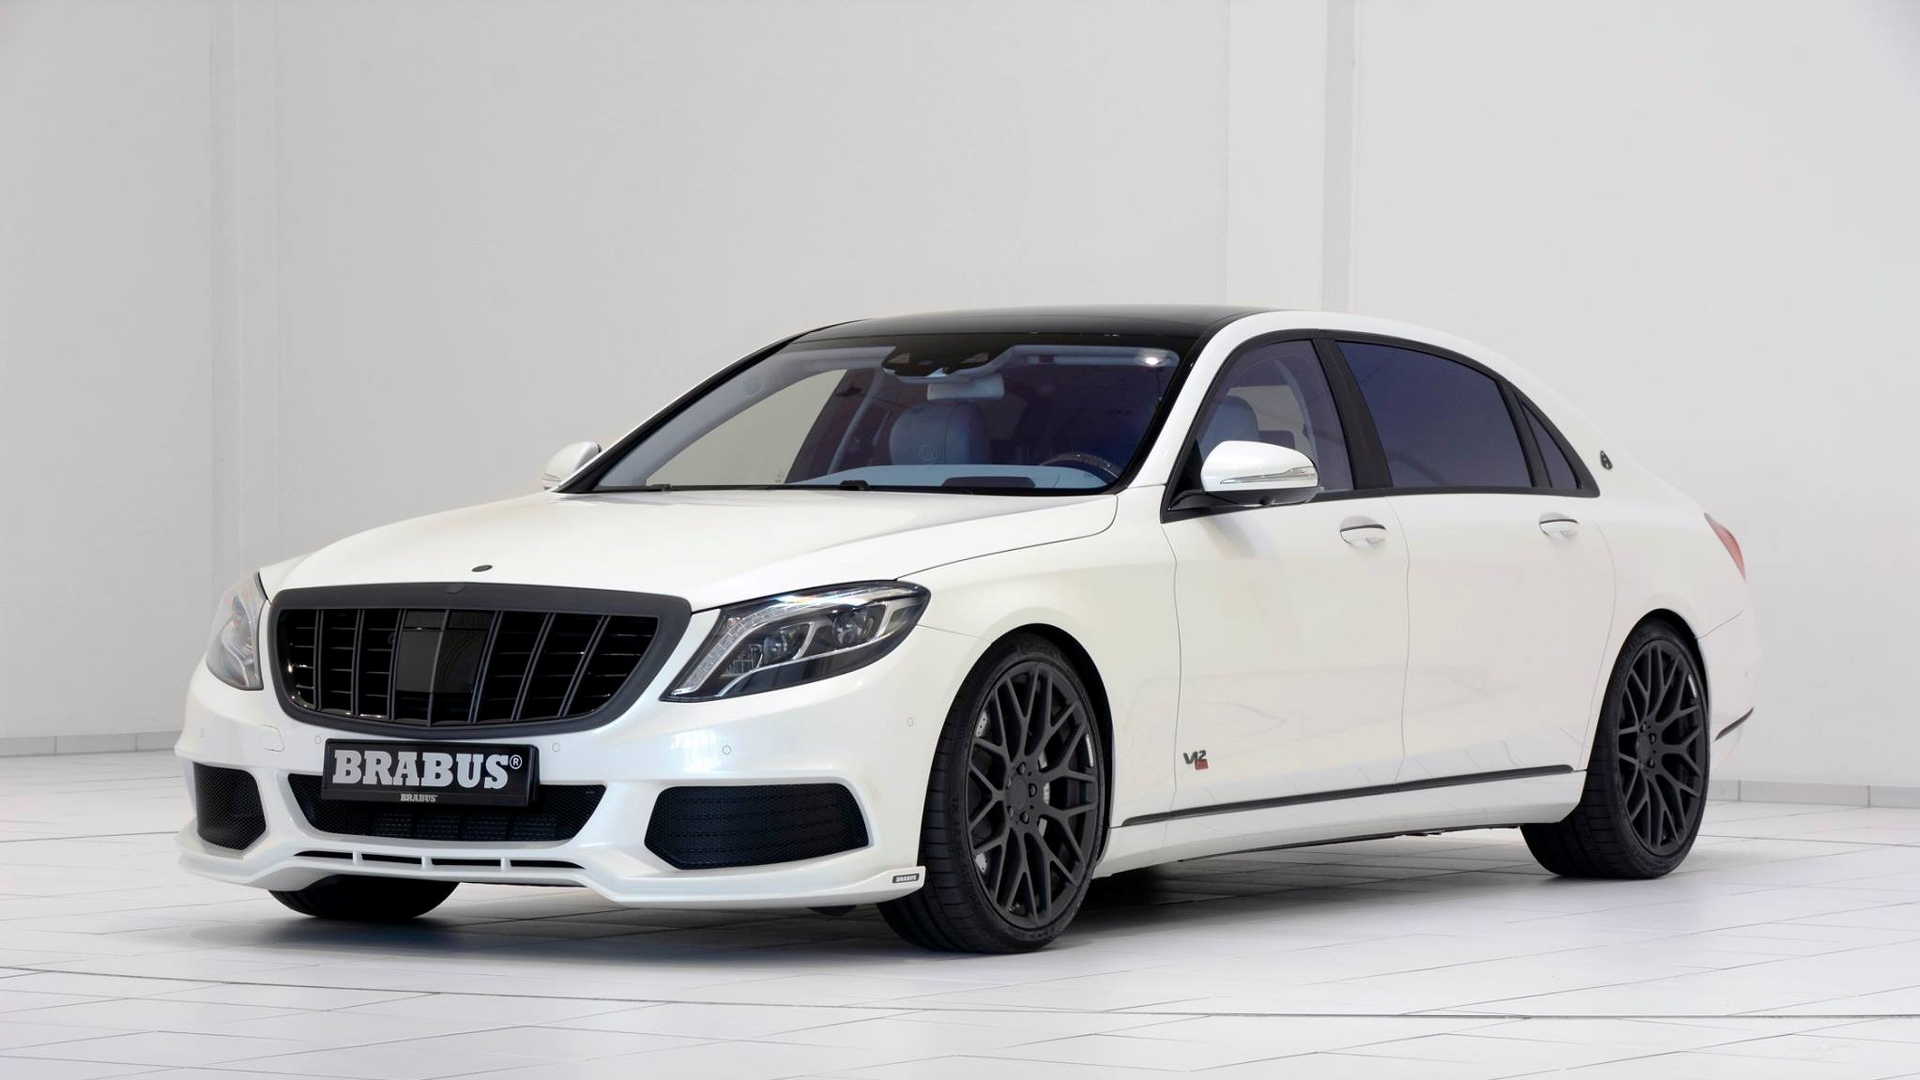 900 HP Brabus Maybach S600 shown in white with blue leather - lovely